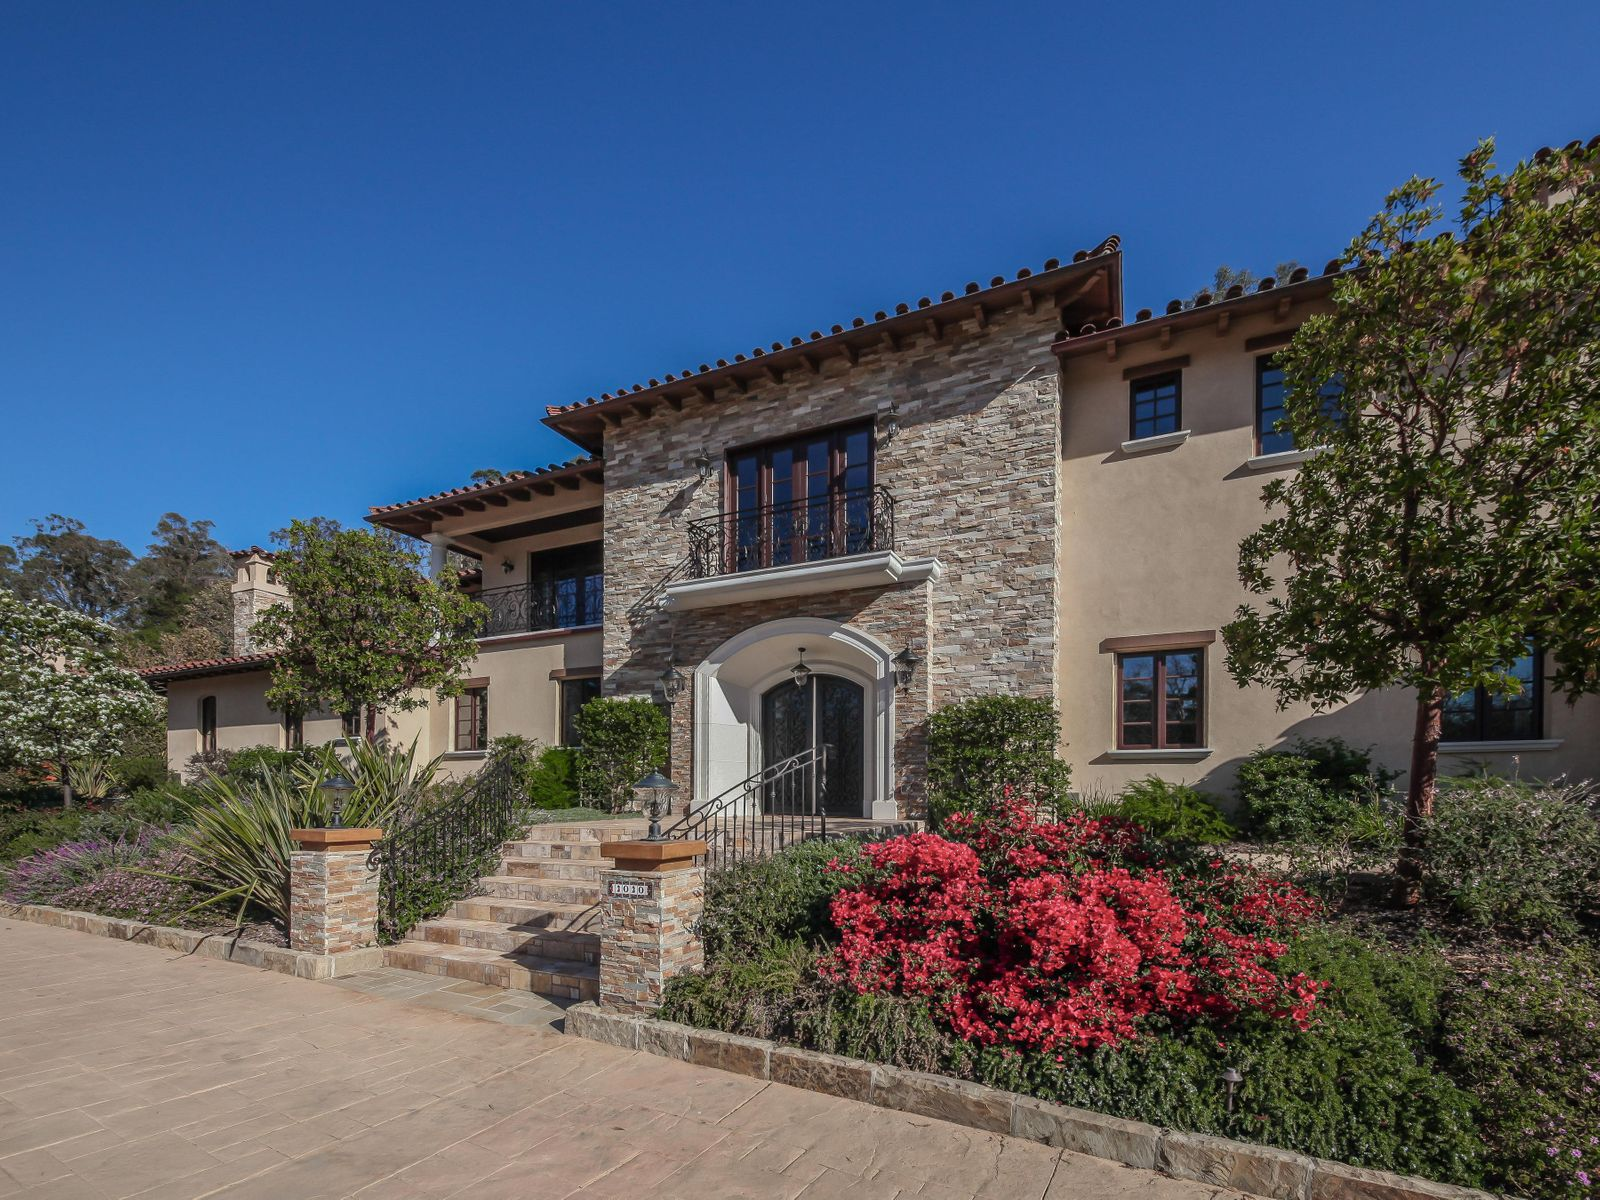 Mediterranean tuscan style home sotheby 39 s international - Tuscany sotheby s international realty ...